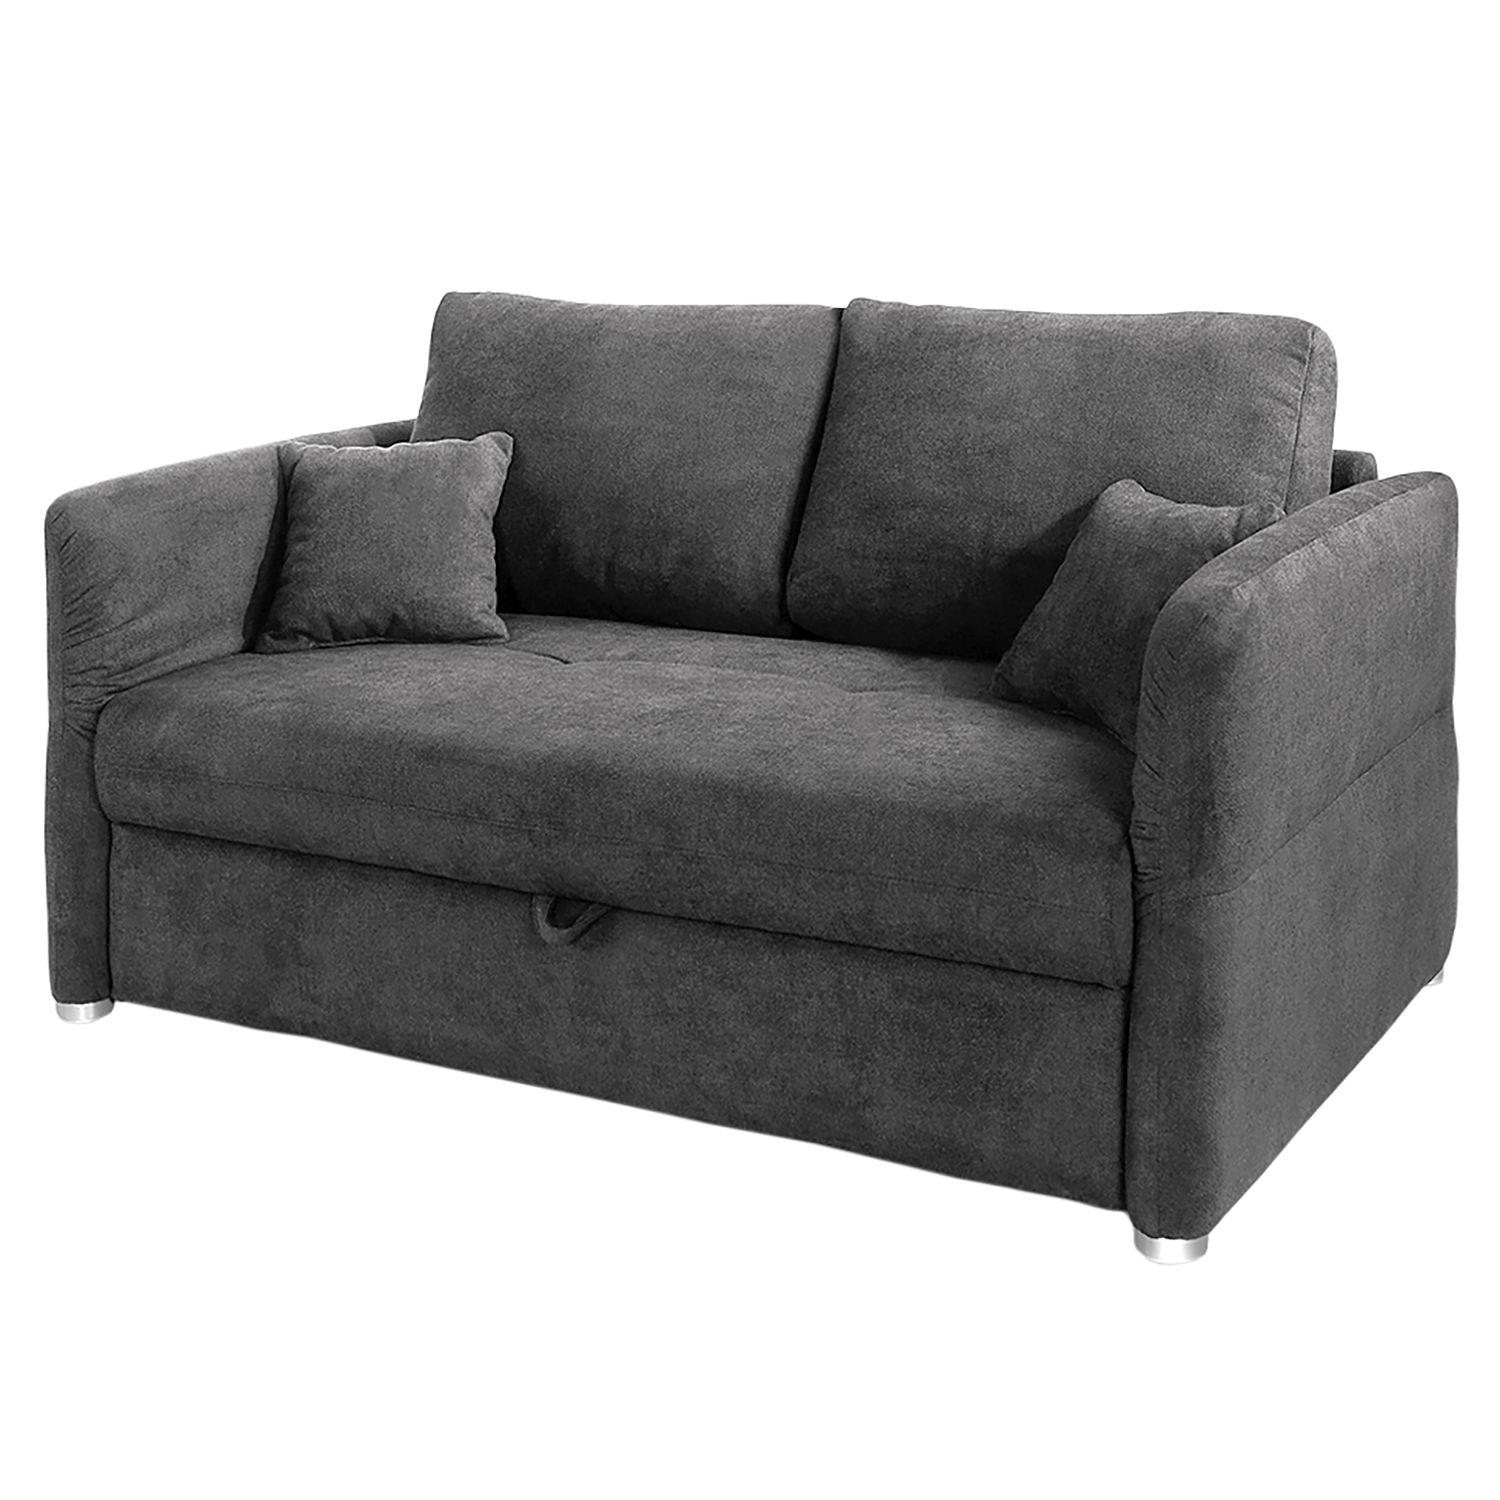 Schlafsofas Reduziert Schlafsofas Design Affordable Interesting Sears Outlet